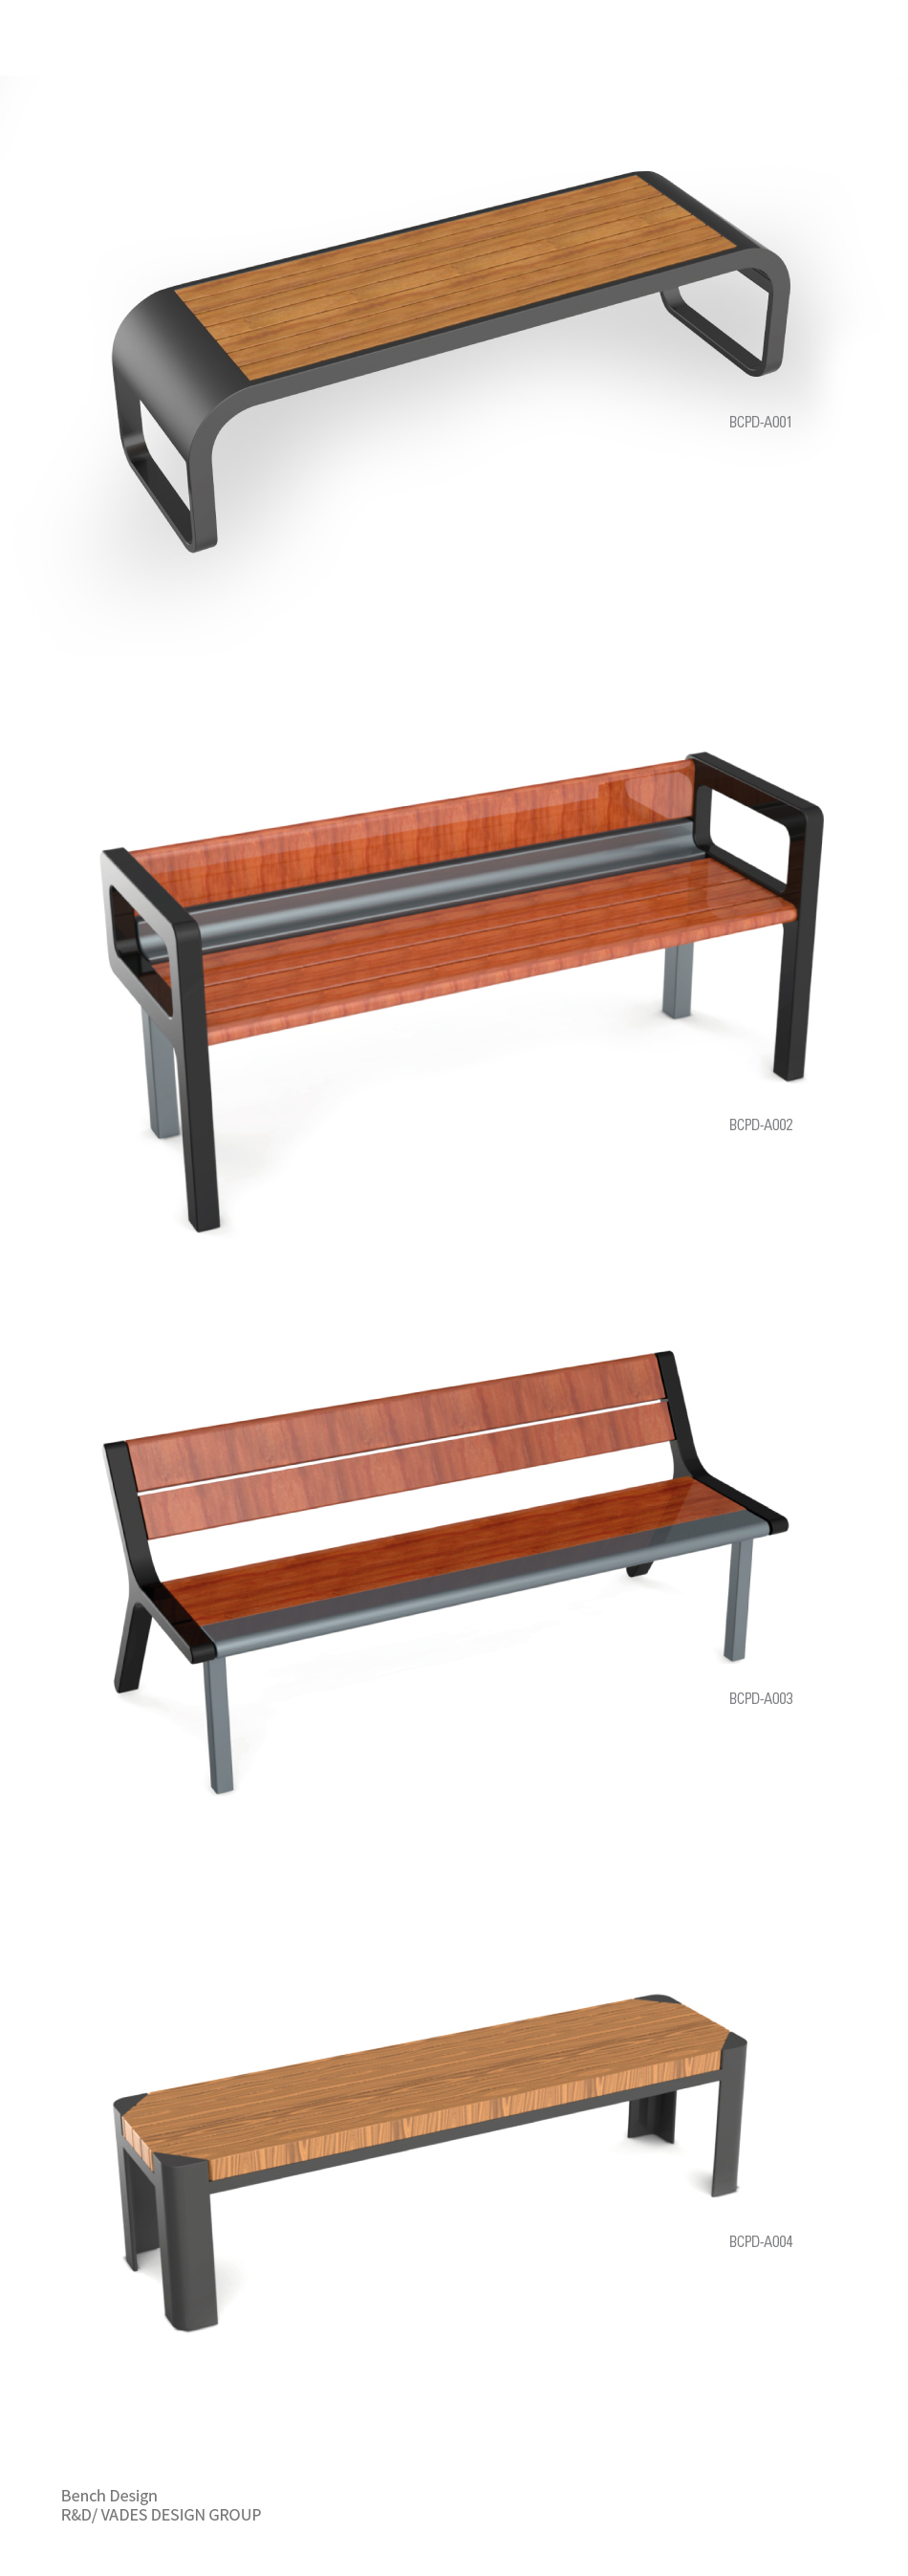 Bench Design - R&D/VADES DESIGN GROUP